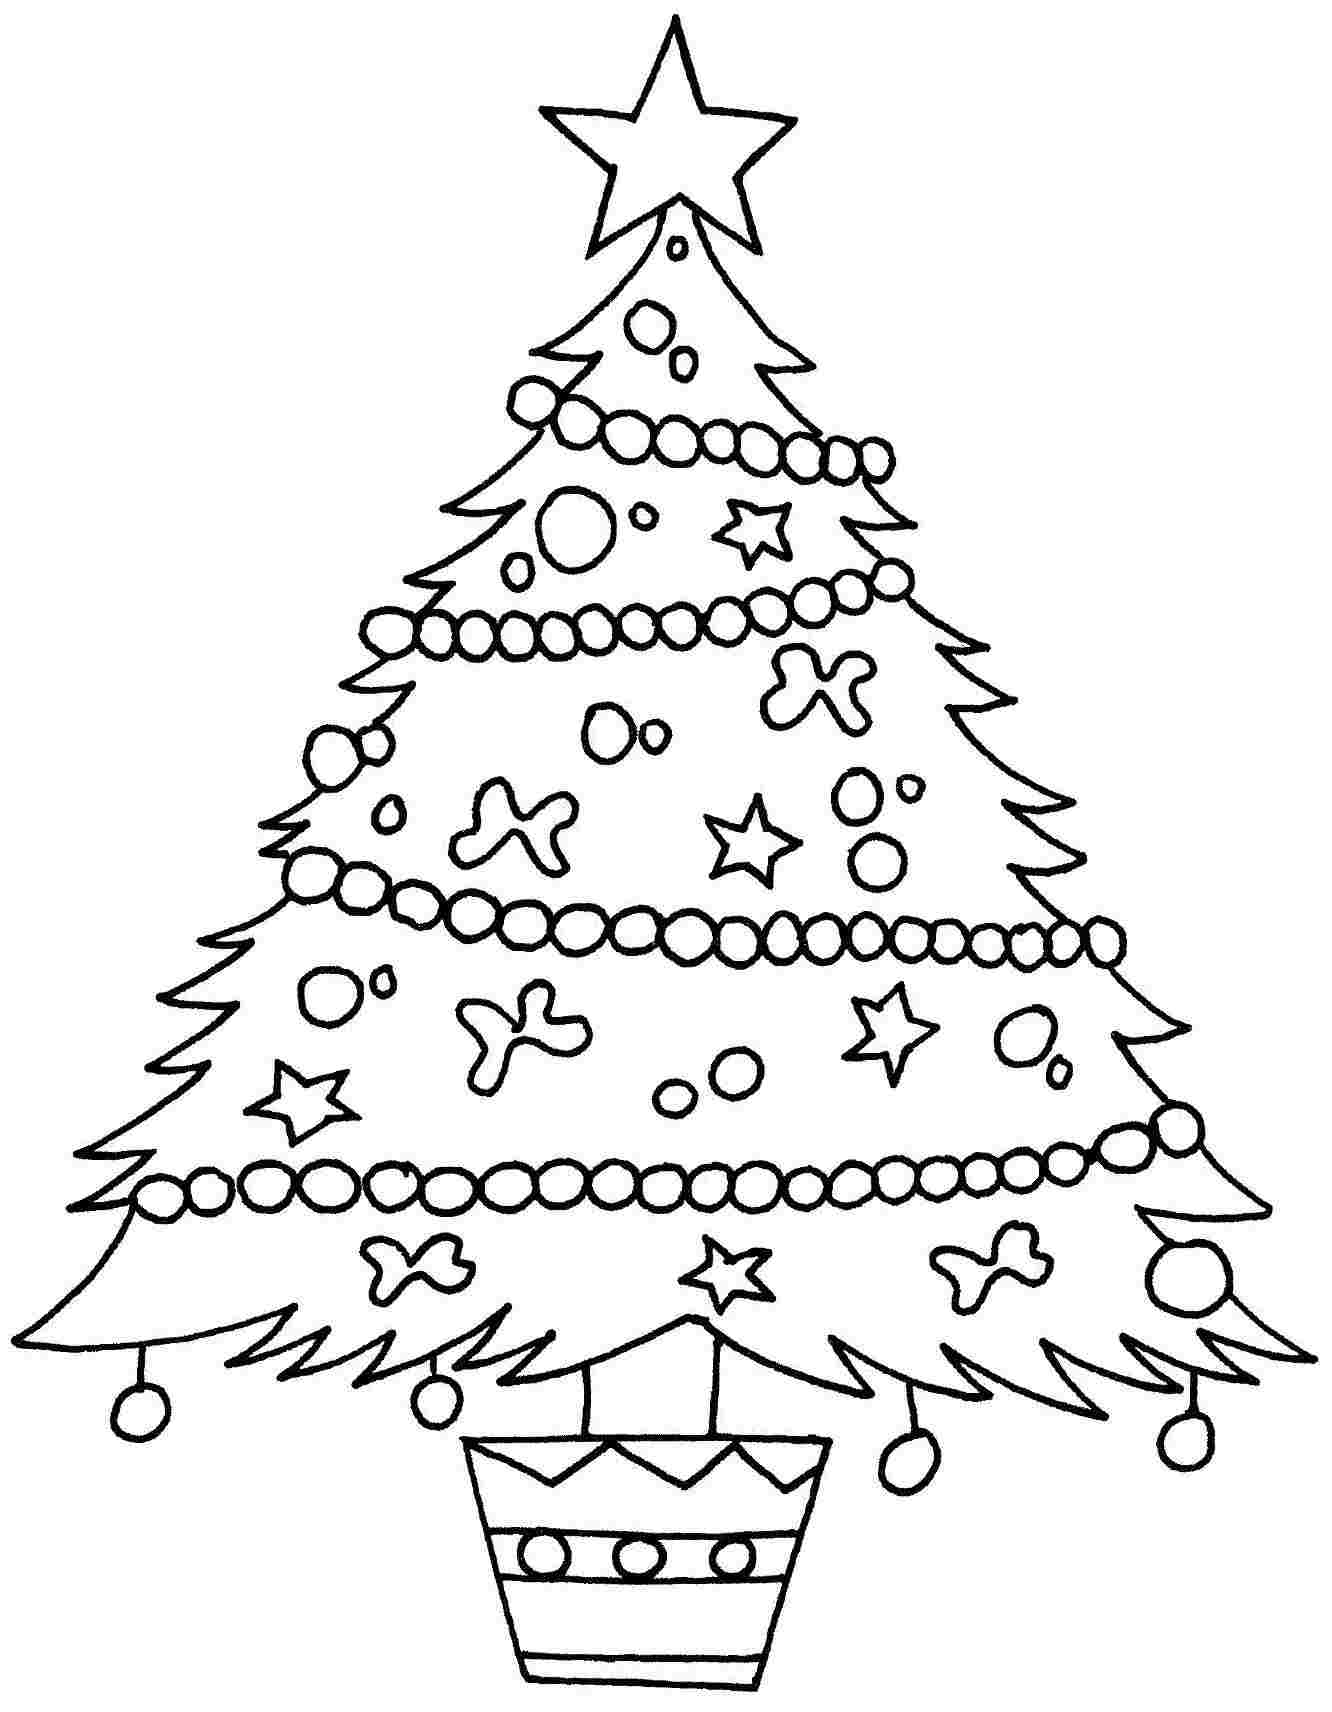 Kids coloring pages christmas trees printable - Christmas Trees Coloring Pages